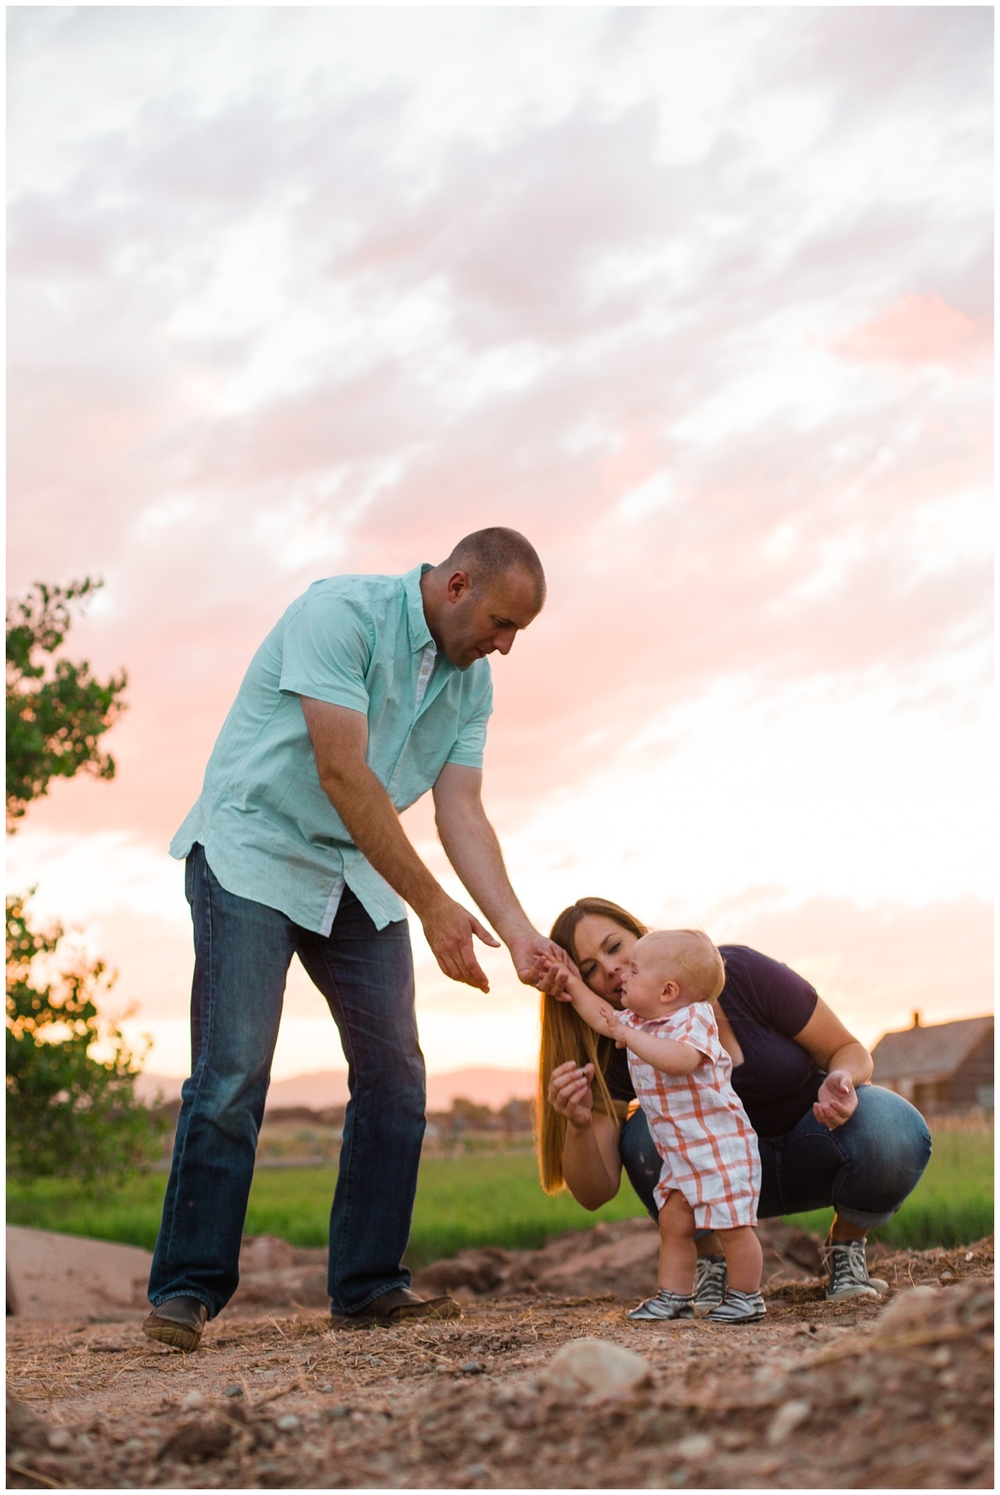 20150728FamilySunderlandJessica174_fort collins family photographer.jpg